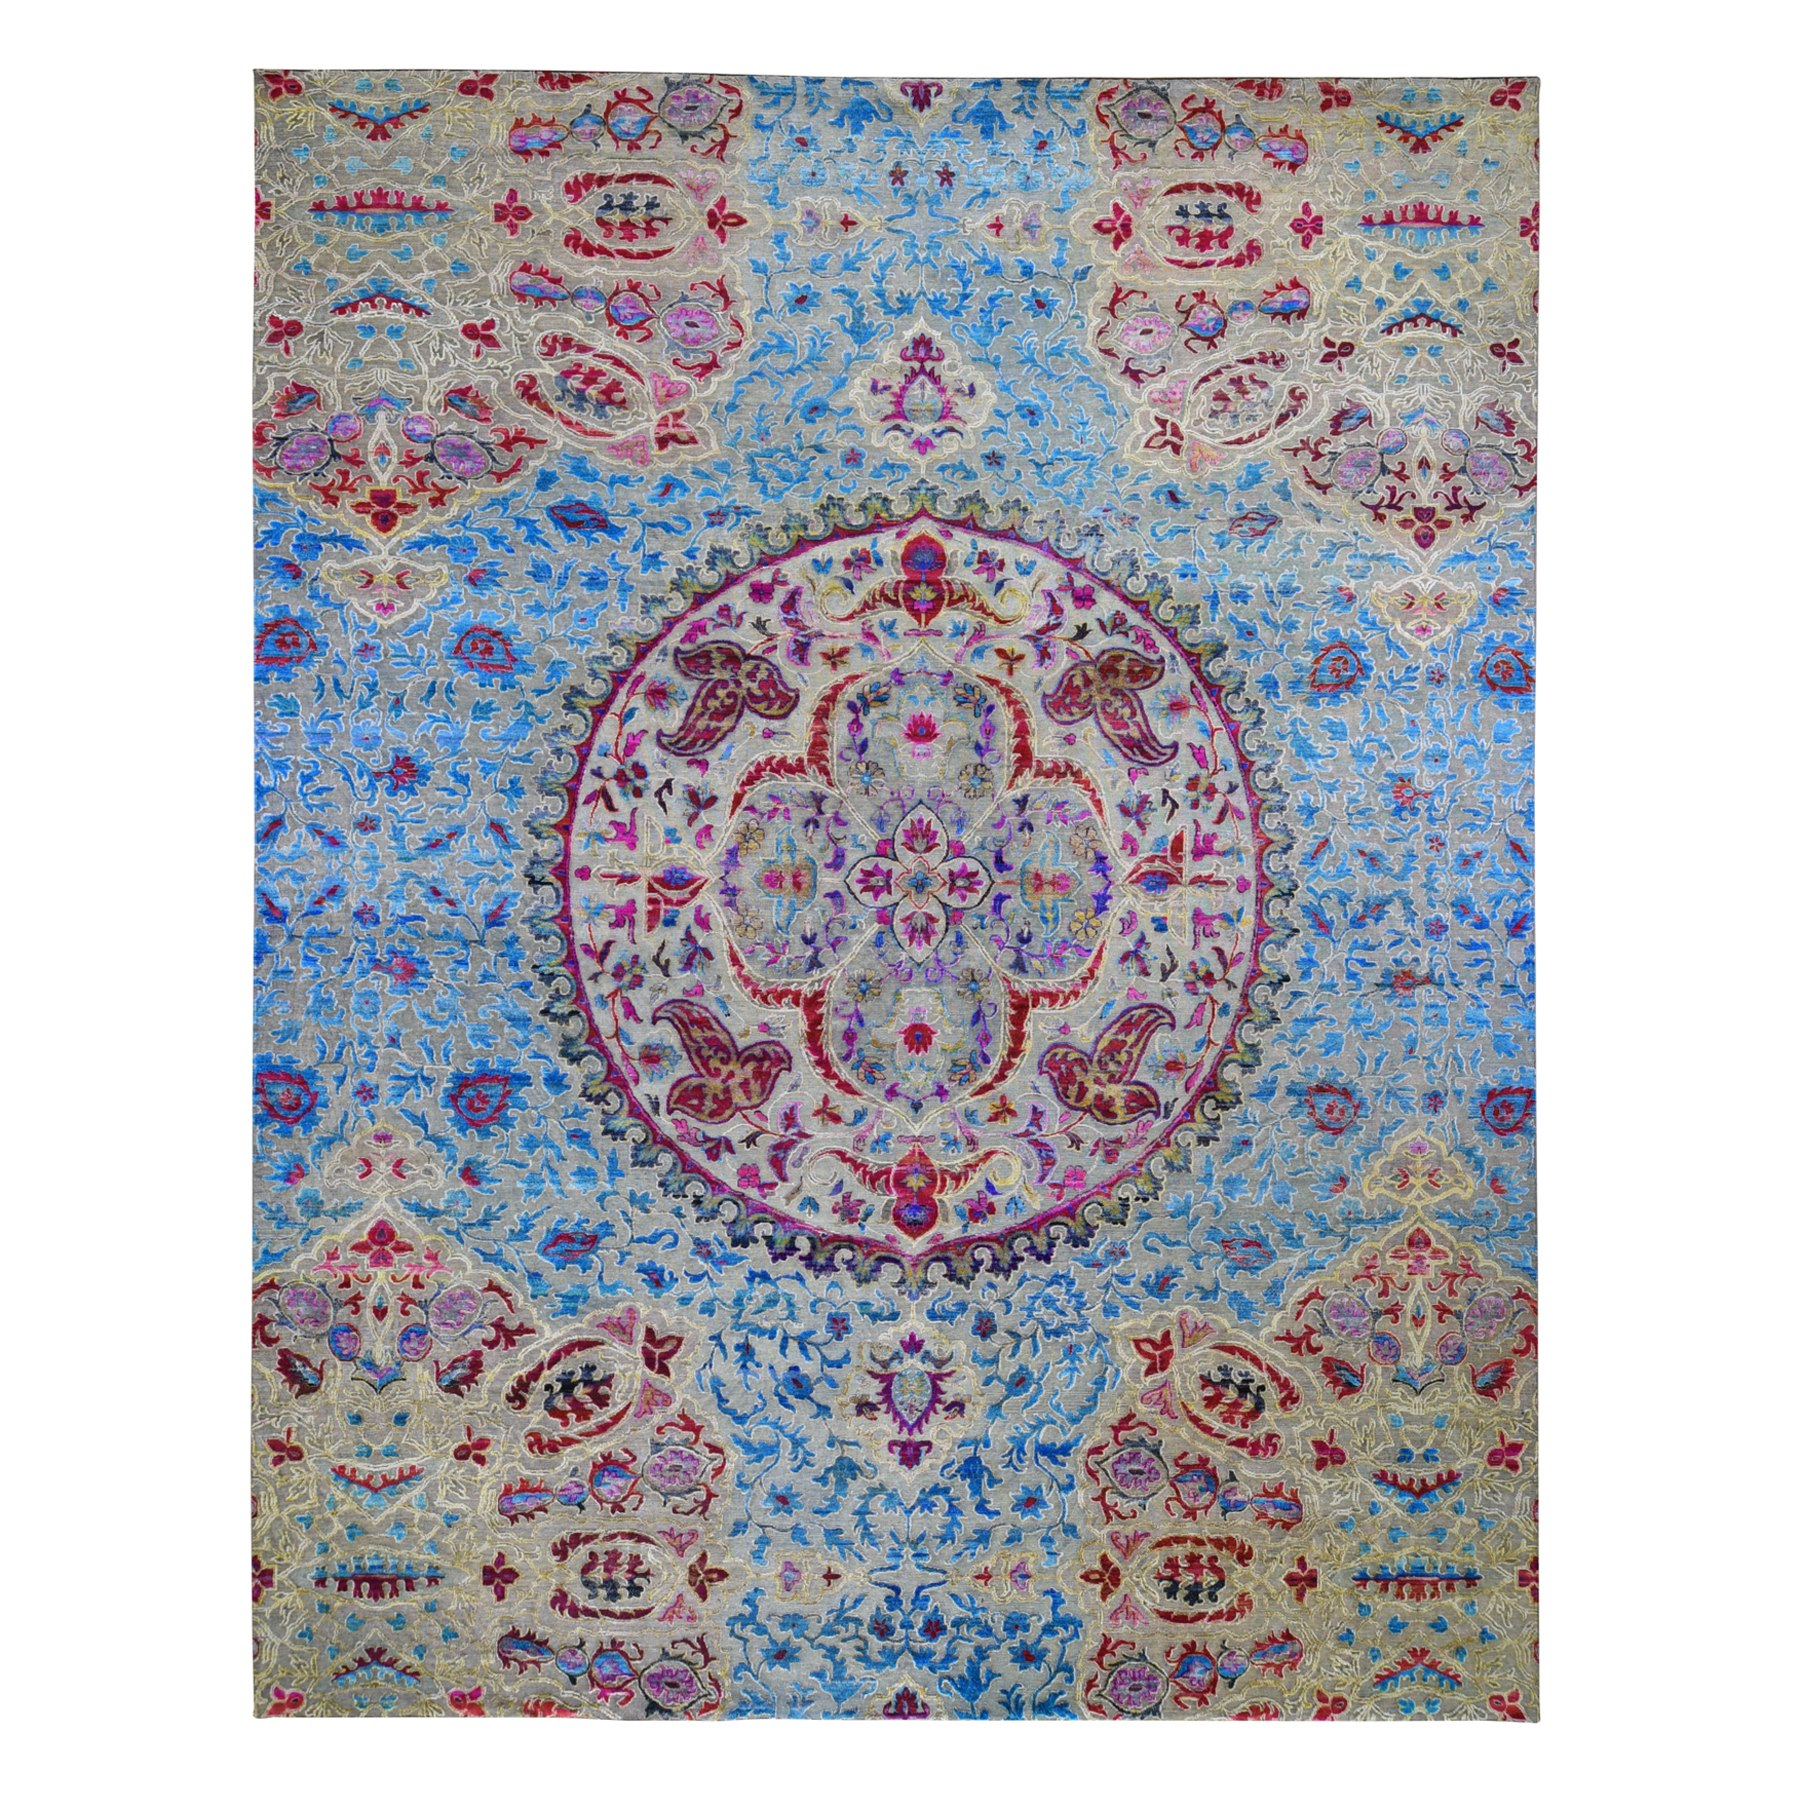 "11'10""x15' Oversized Sari Silk And Textured Wool Colorful Maharaja Hand Woven Oriental Rug"